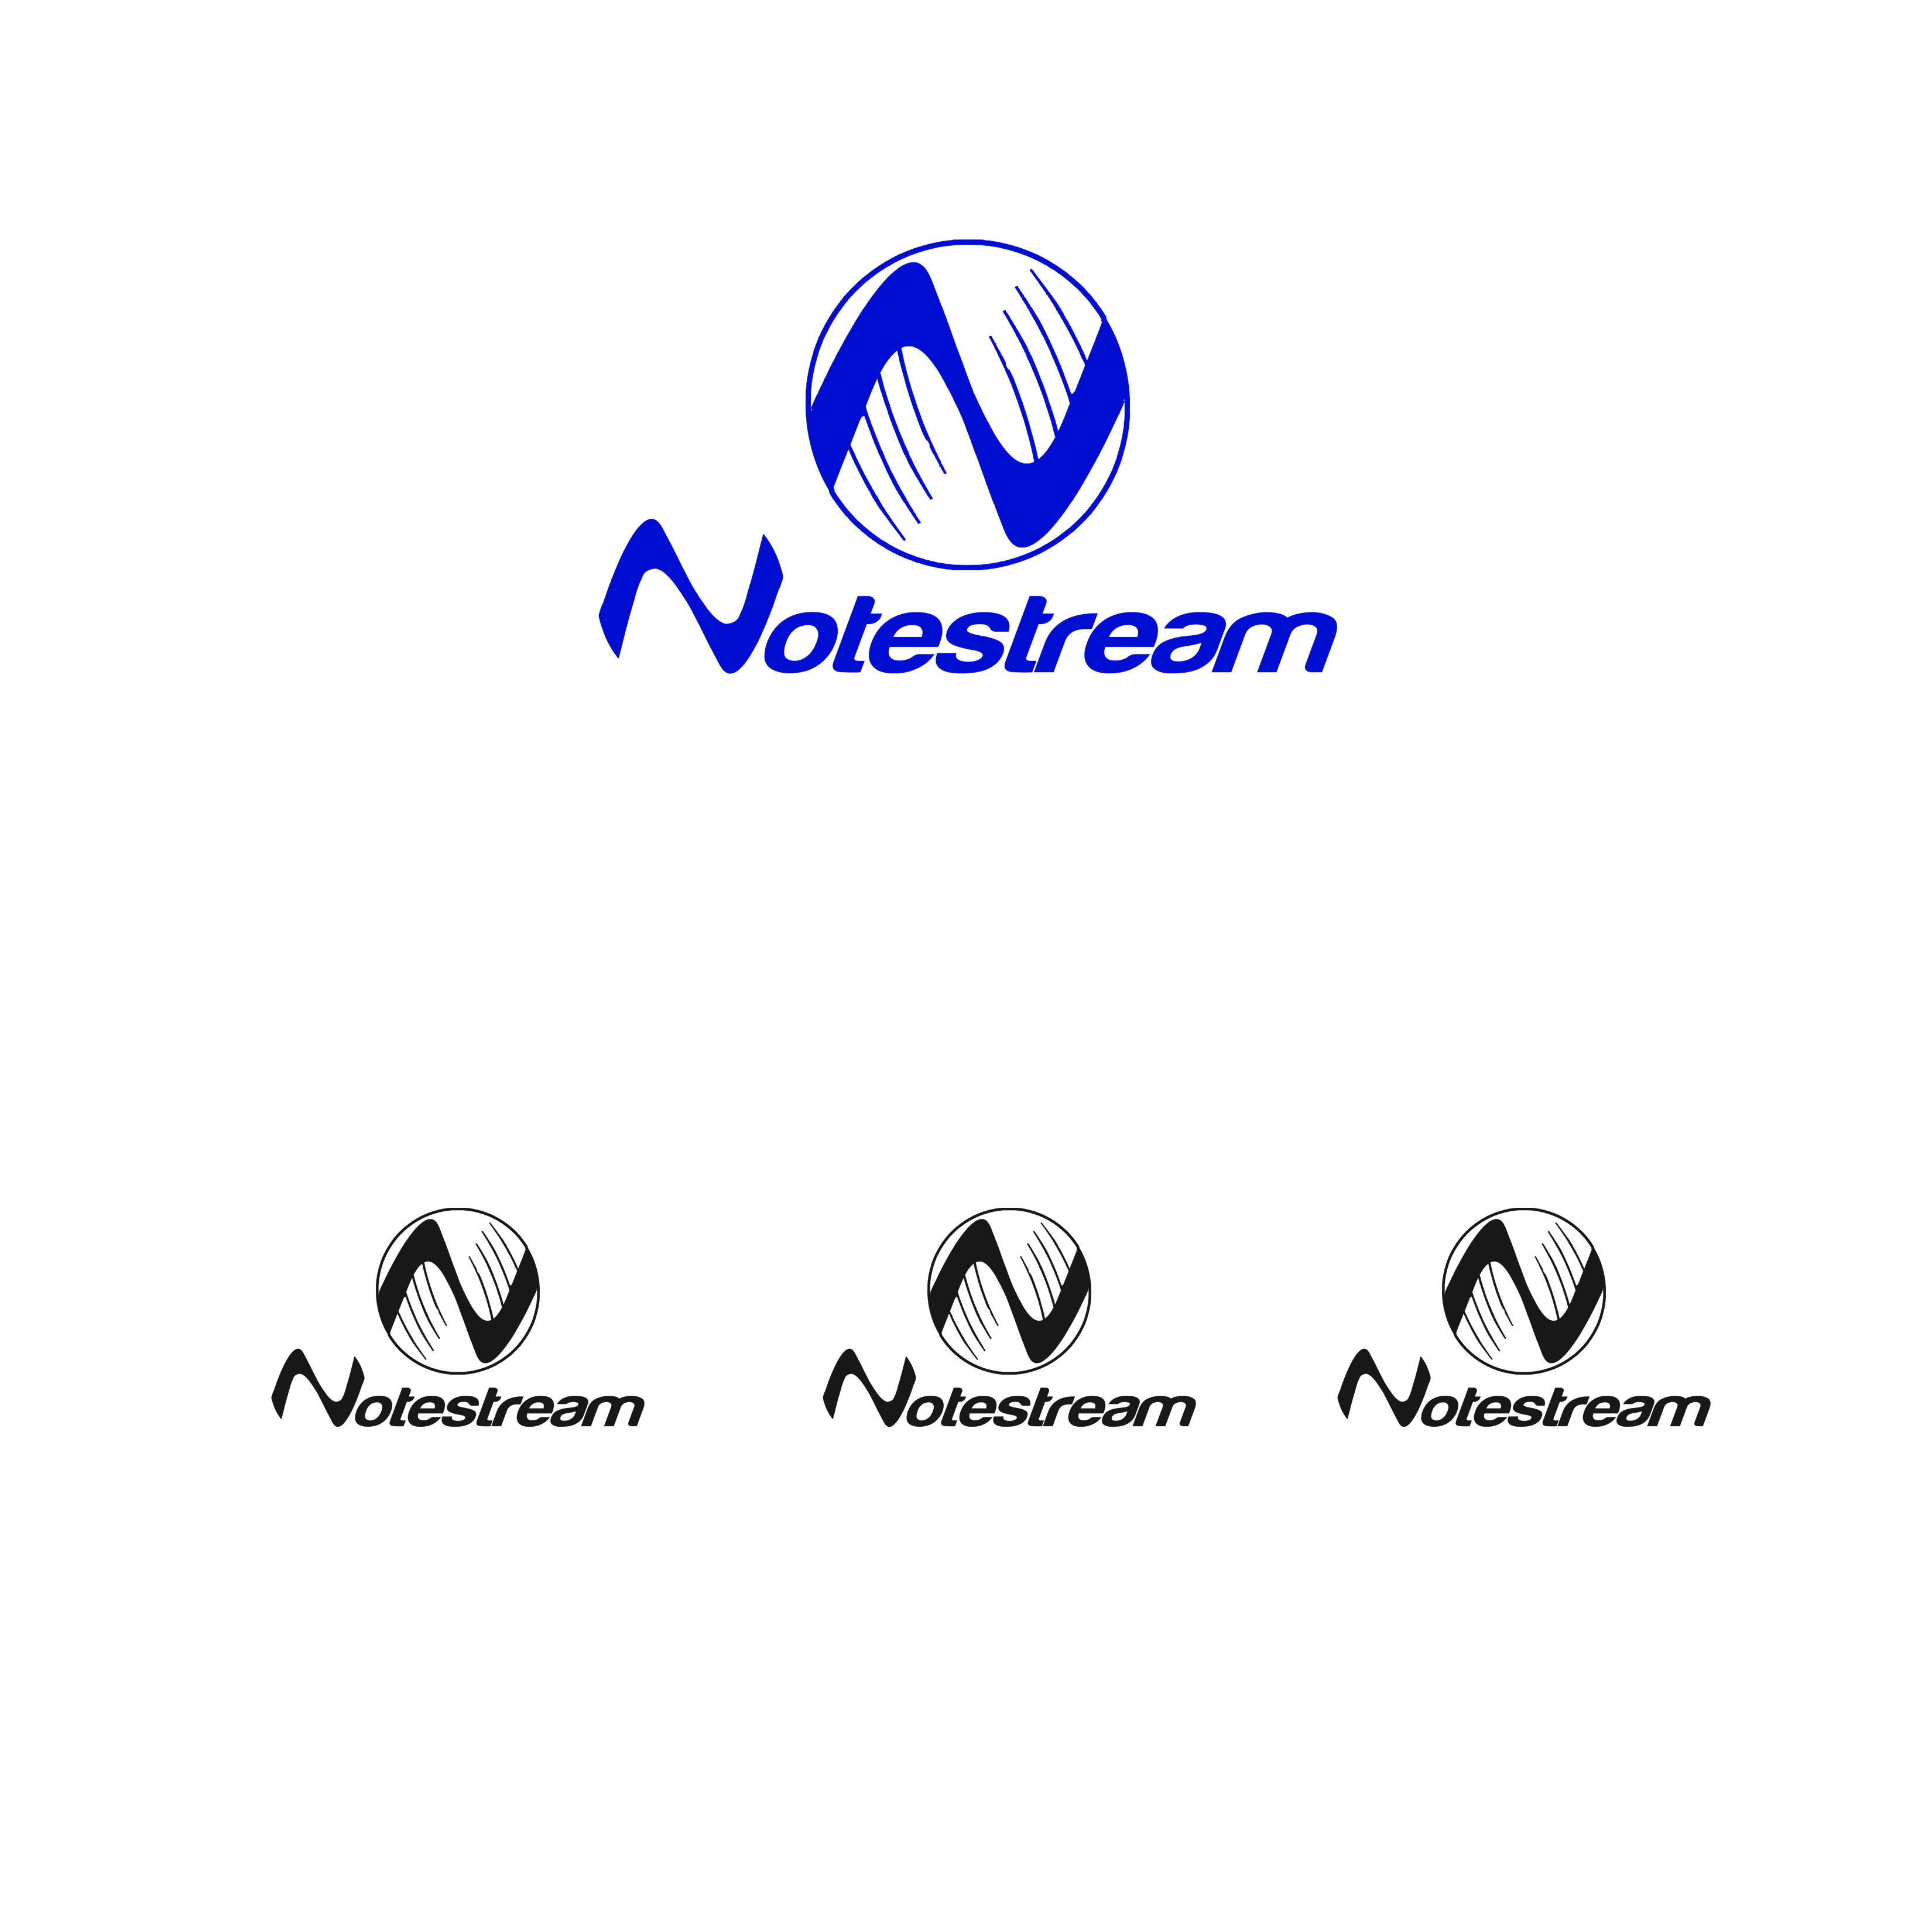 Logo Design by Alan Esclamado - Entry No. 55 in the Logo Design Contest Imaginative Logo Design for NoteStream.